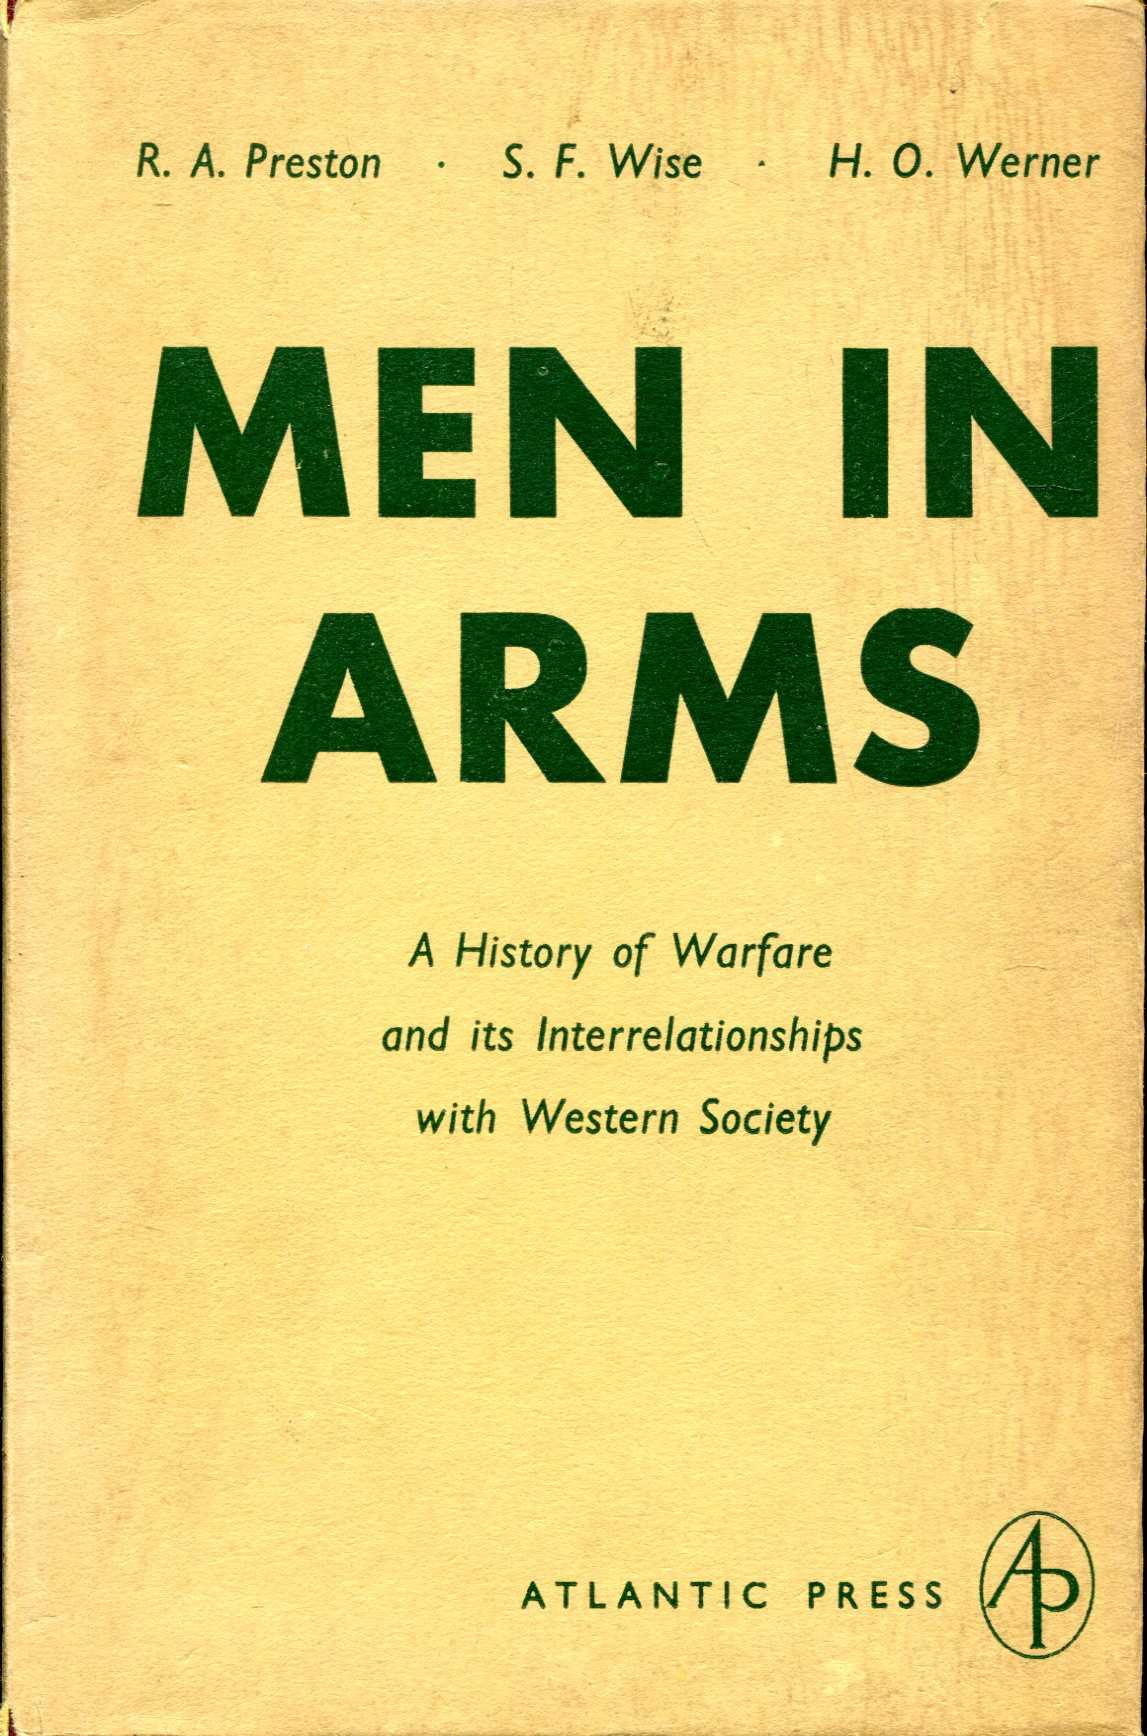 Image for men in Arms, a history of warfare and its interrelationships with Western Society